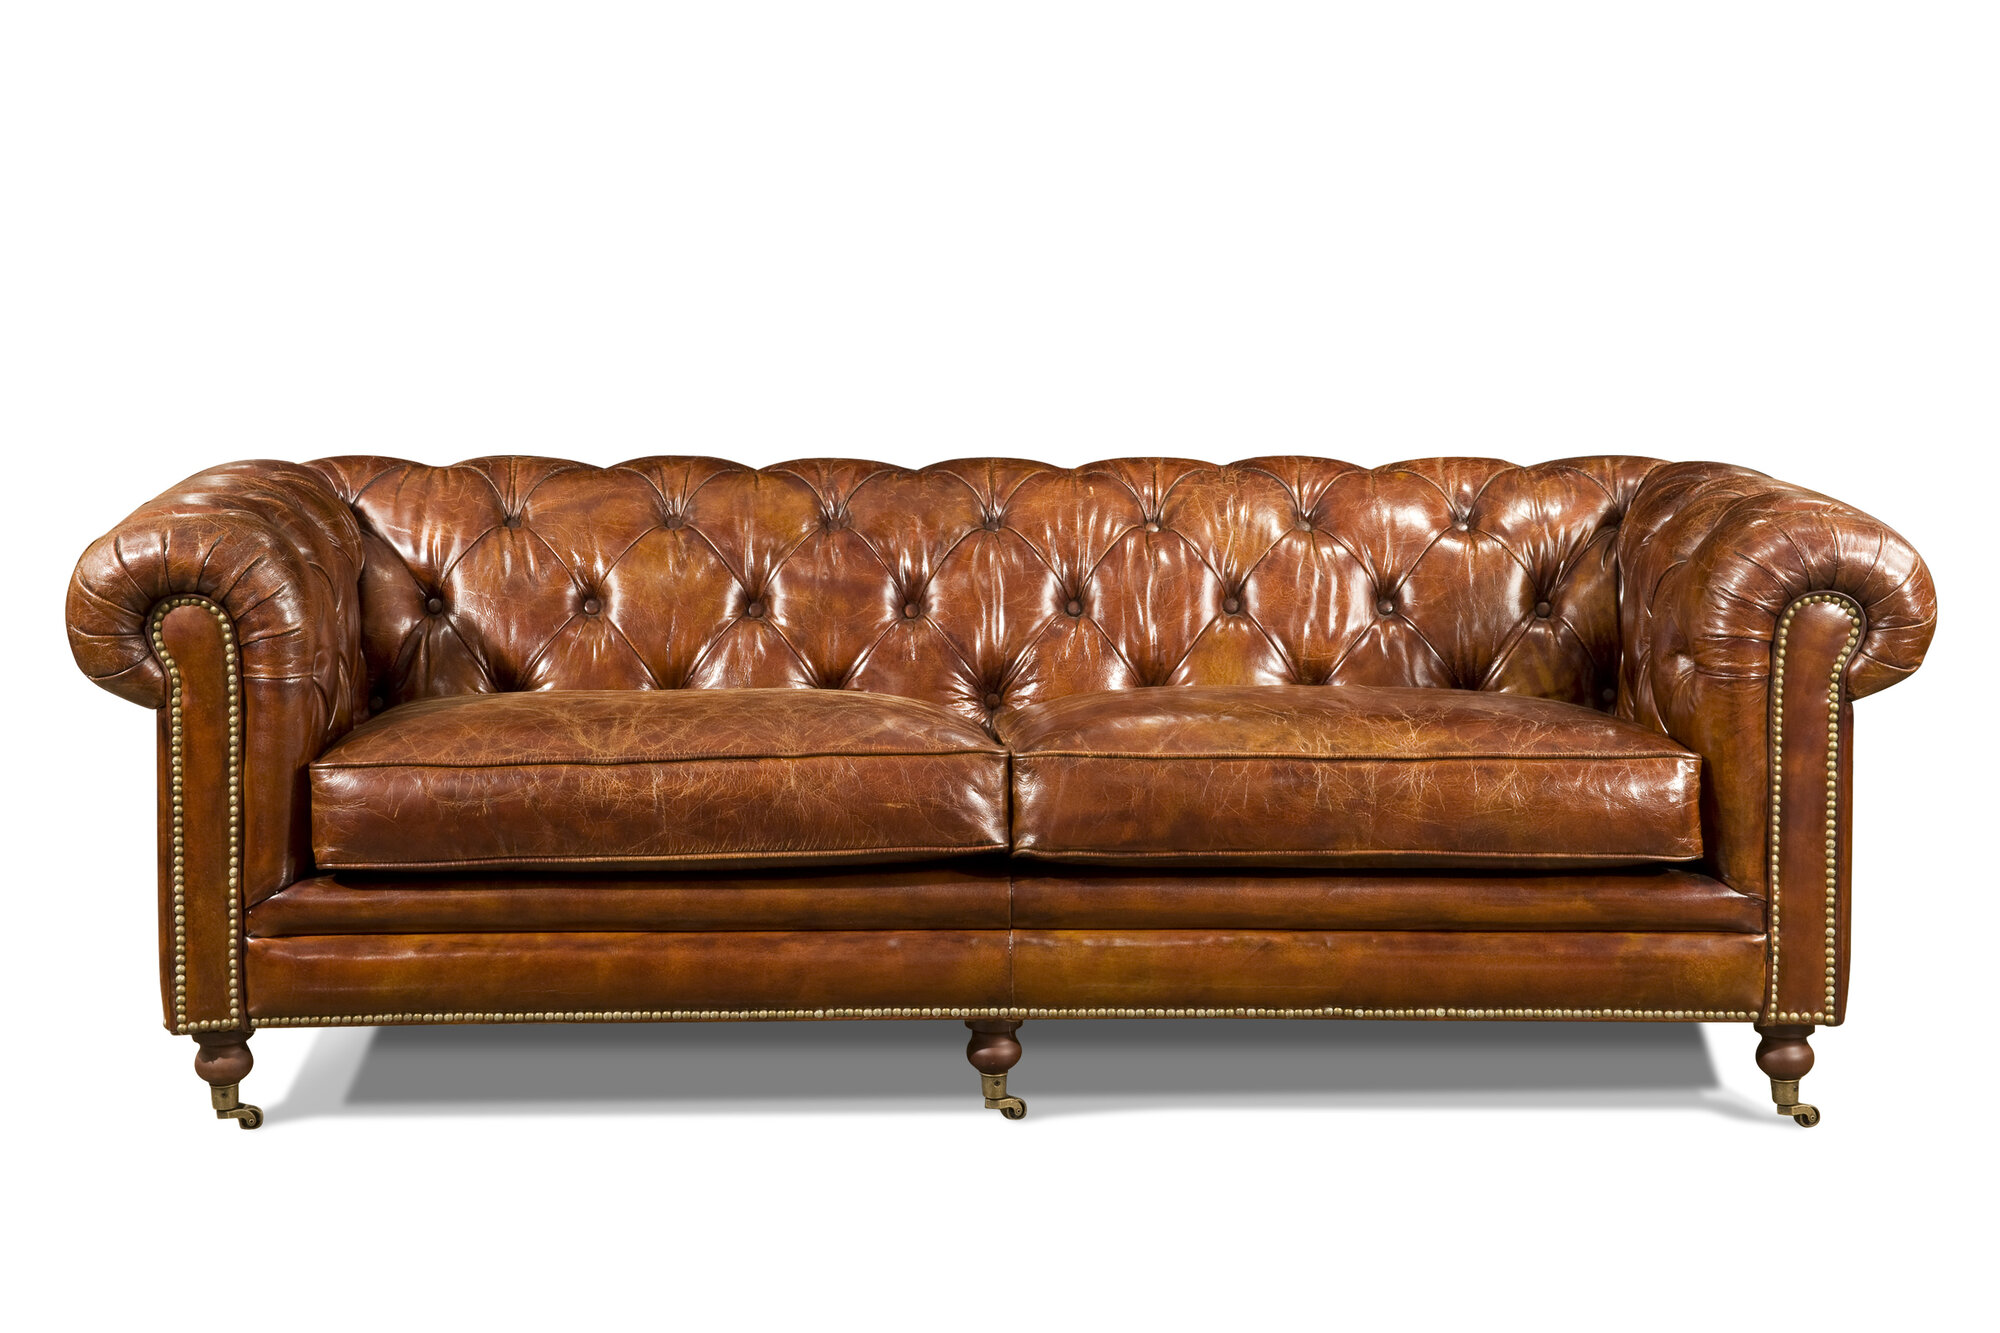 Moe 39 S Home Collection Birmingham Leather Chesterfield Sofa Ebay